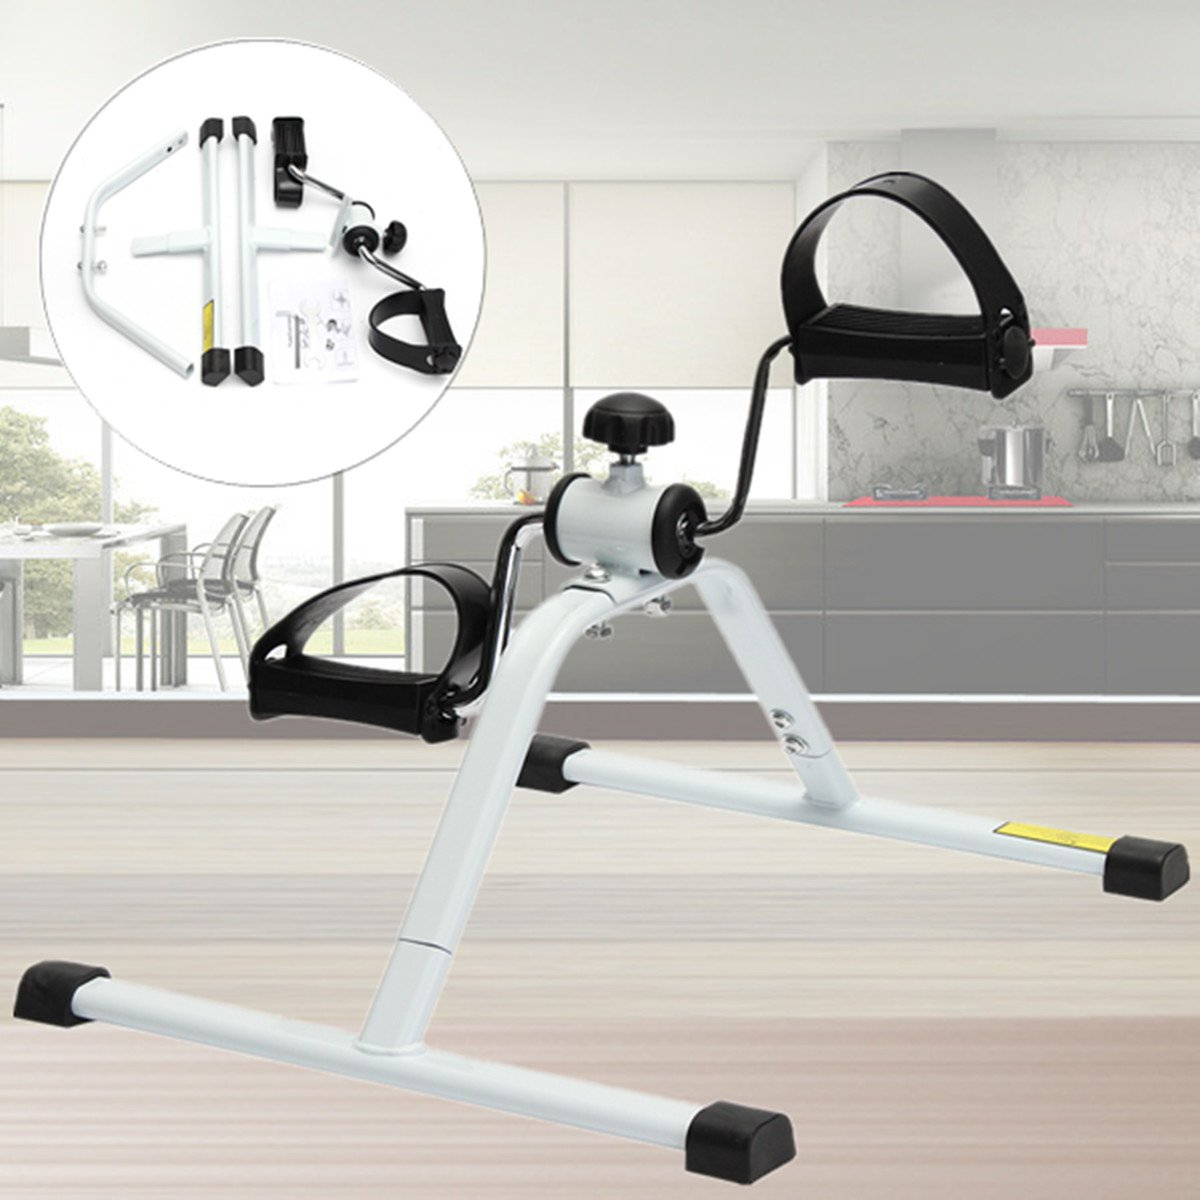 Adjustable Foldable Compact Cycle Fitness Pedal Exerciser/Bike Exercise